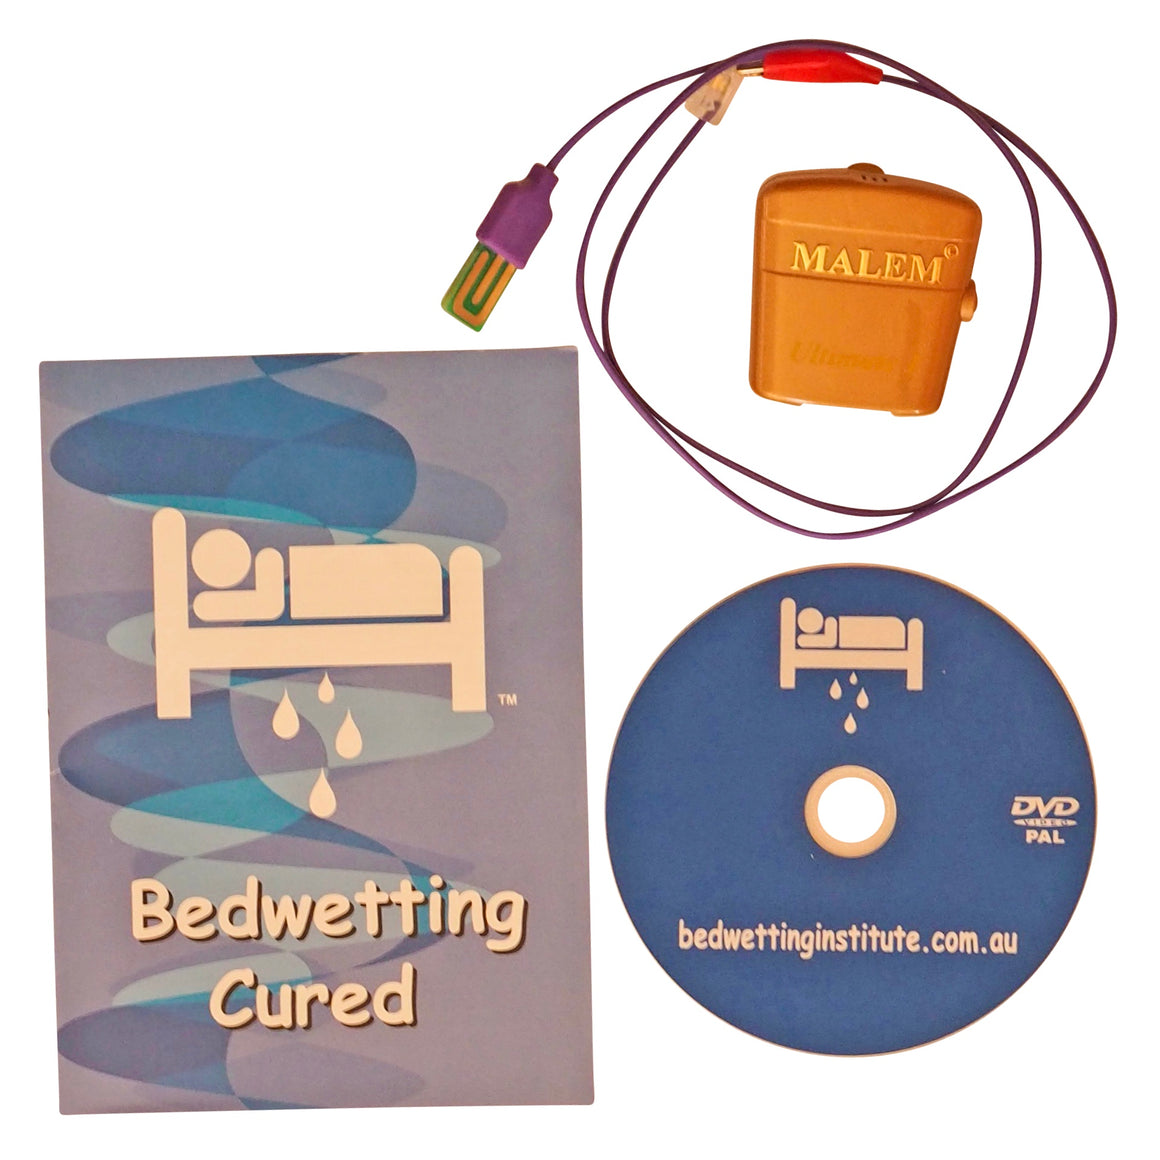 Malem Gold Ultimate Bed wetting Alarm + bonus Bedwetting Cured DVD